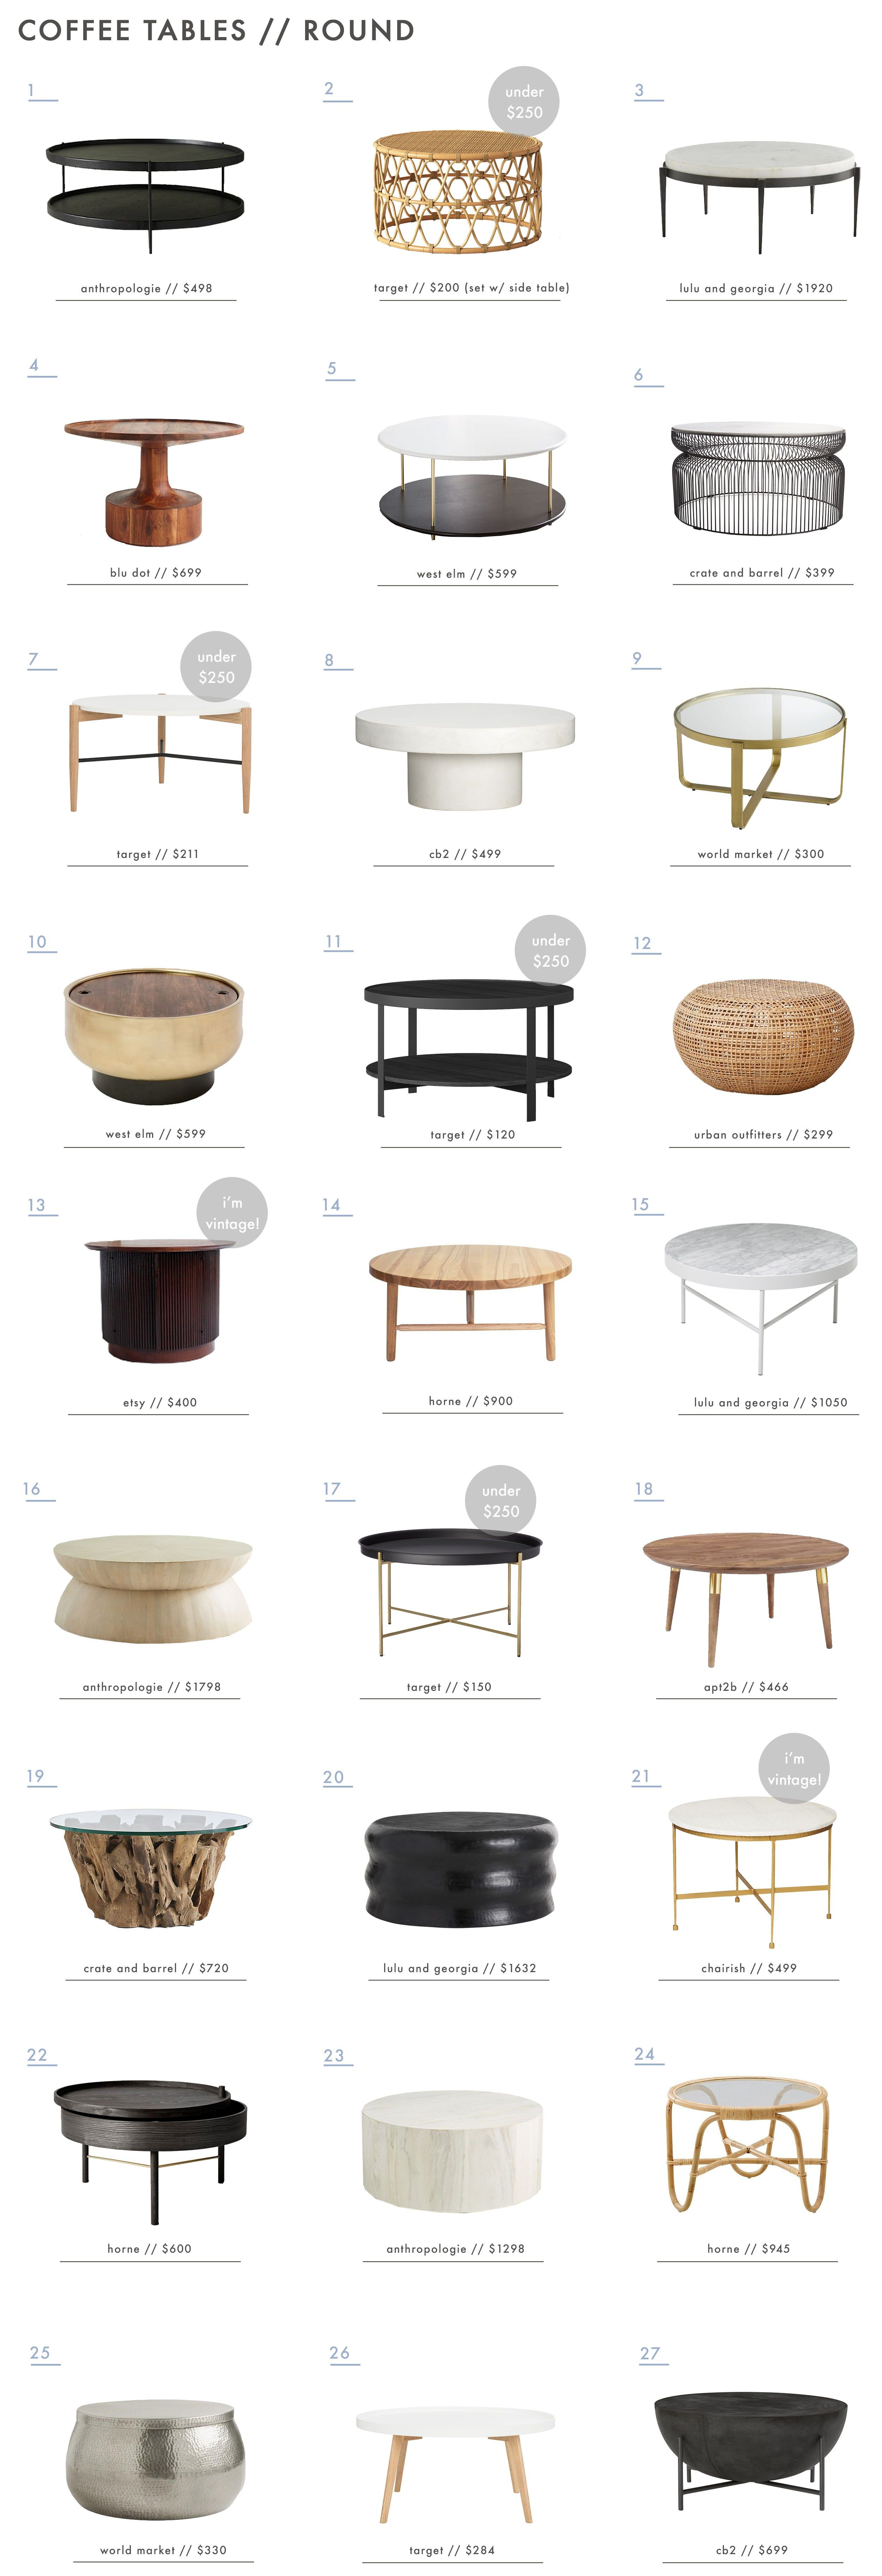 How to Pick a Coffee Table (+ 105 Picks For Every Space) is part of Cool Home Accessories Coffee Tables - Picking a coffee table shouldn't be an afterthought  If you've ever struggled with what size, shape or style is best for your home, we're here to help